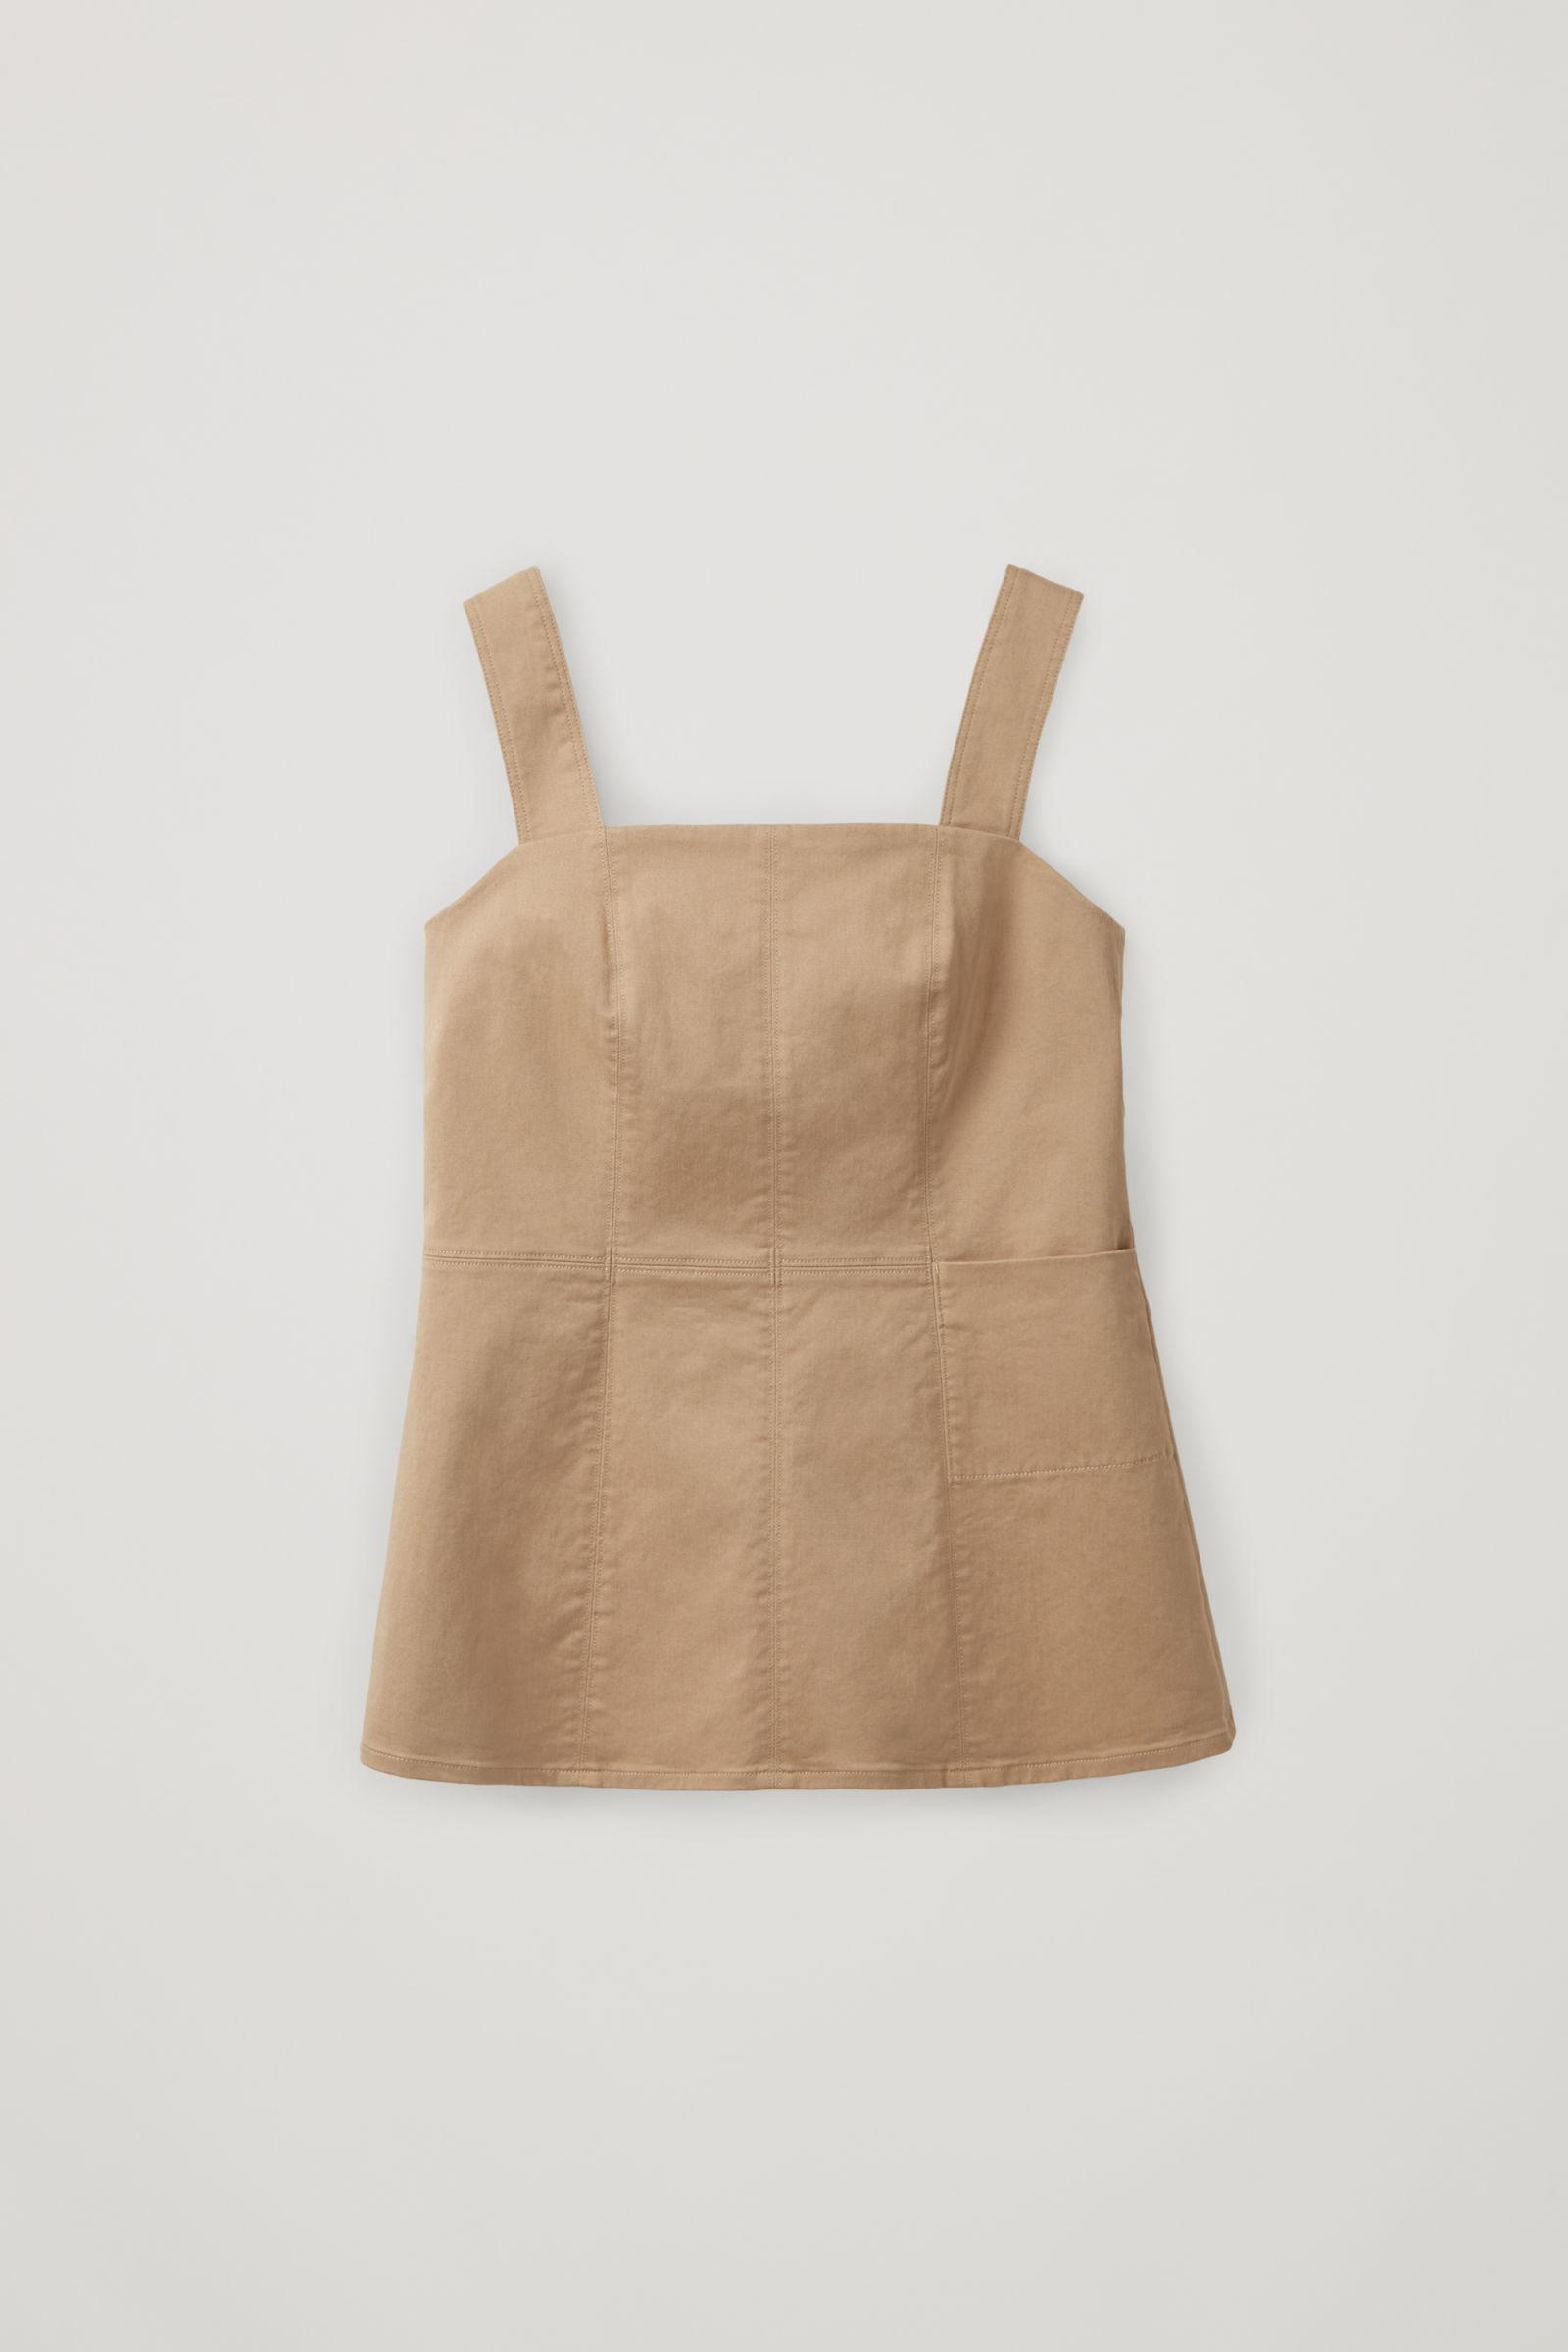 STRAP TOP WITH FLARED HEM